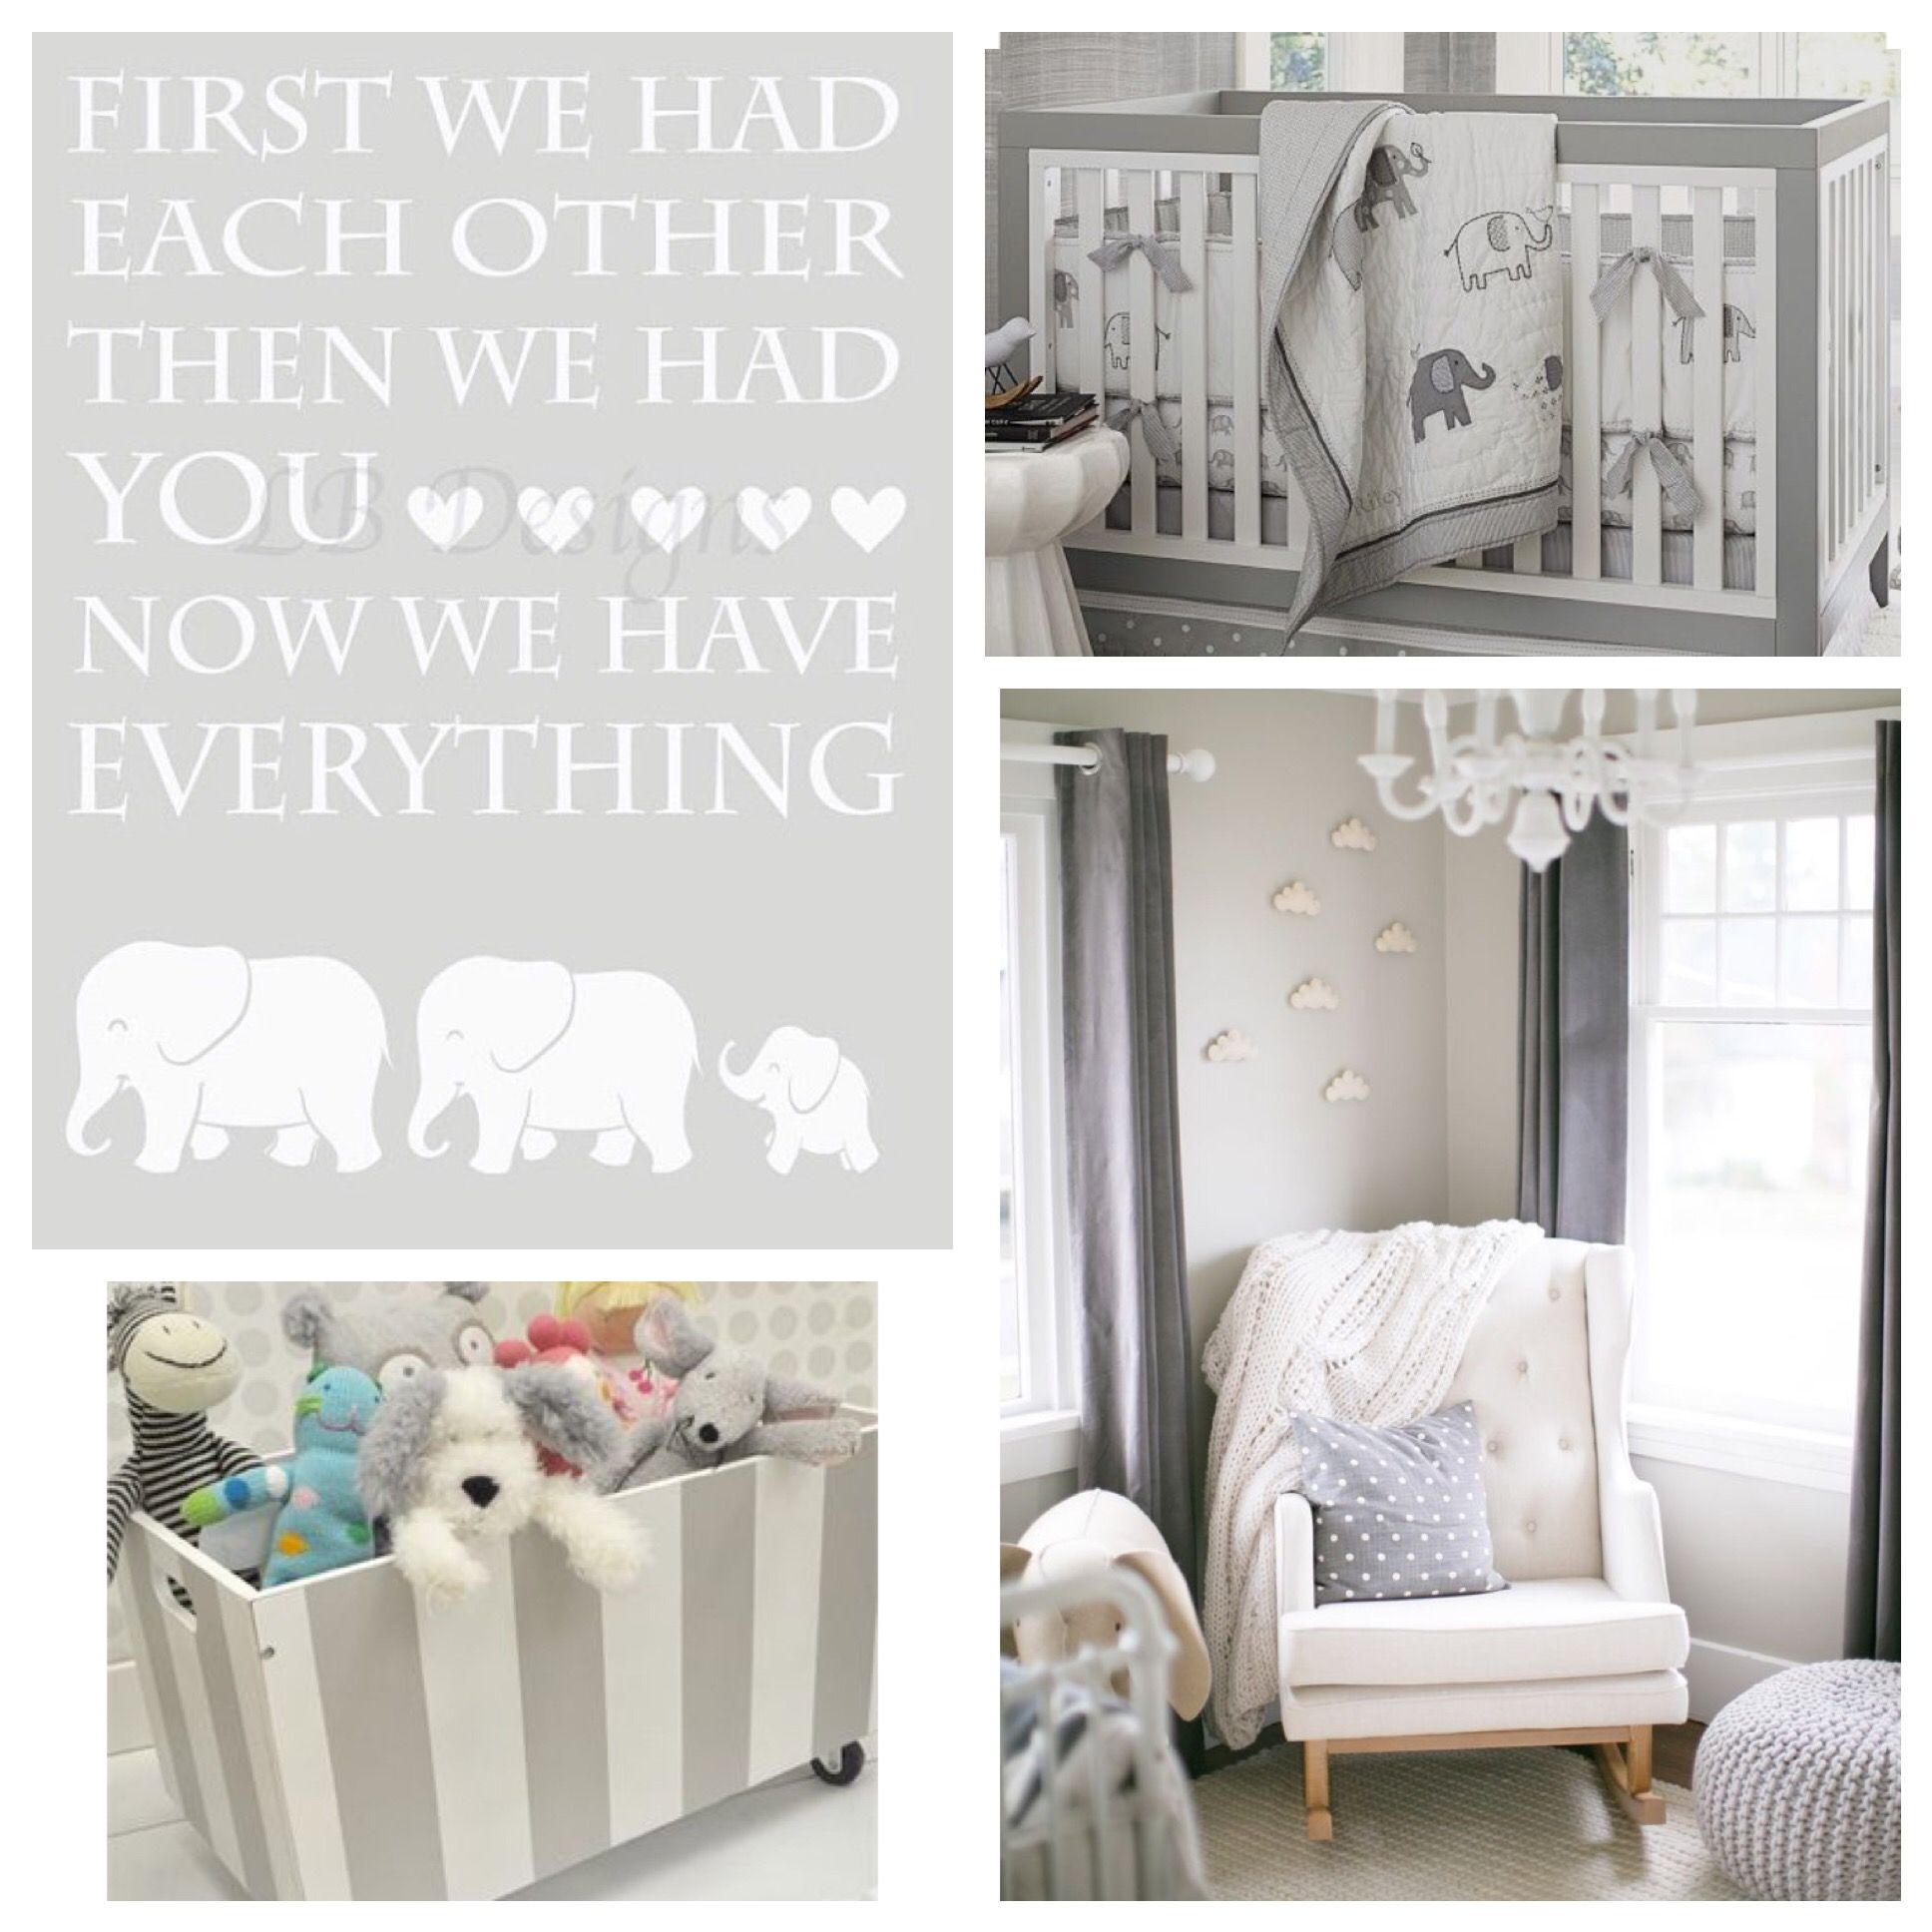 Gender Neutral Nursery Gray Decor Elephant Baby Room Ftc Disclosure This Is An Affiliate Link Which Means I May Make A